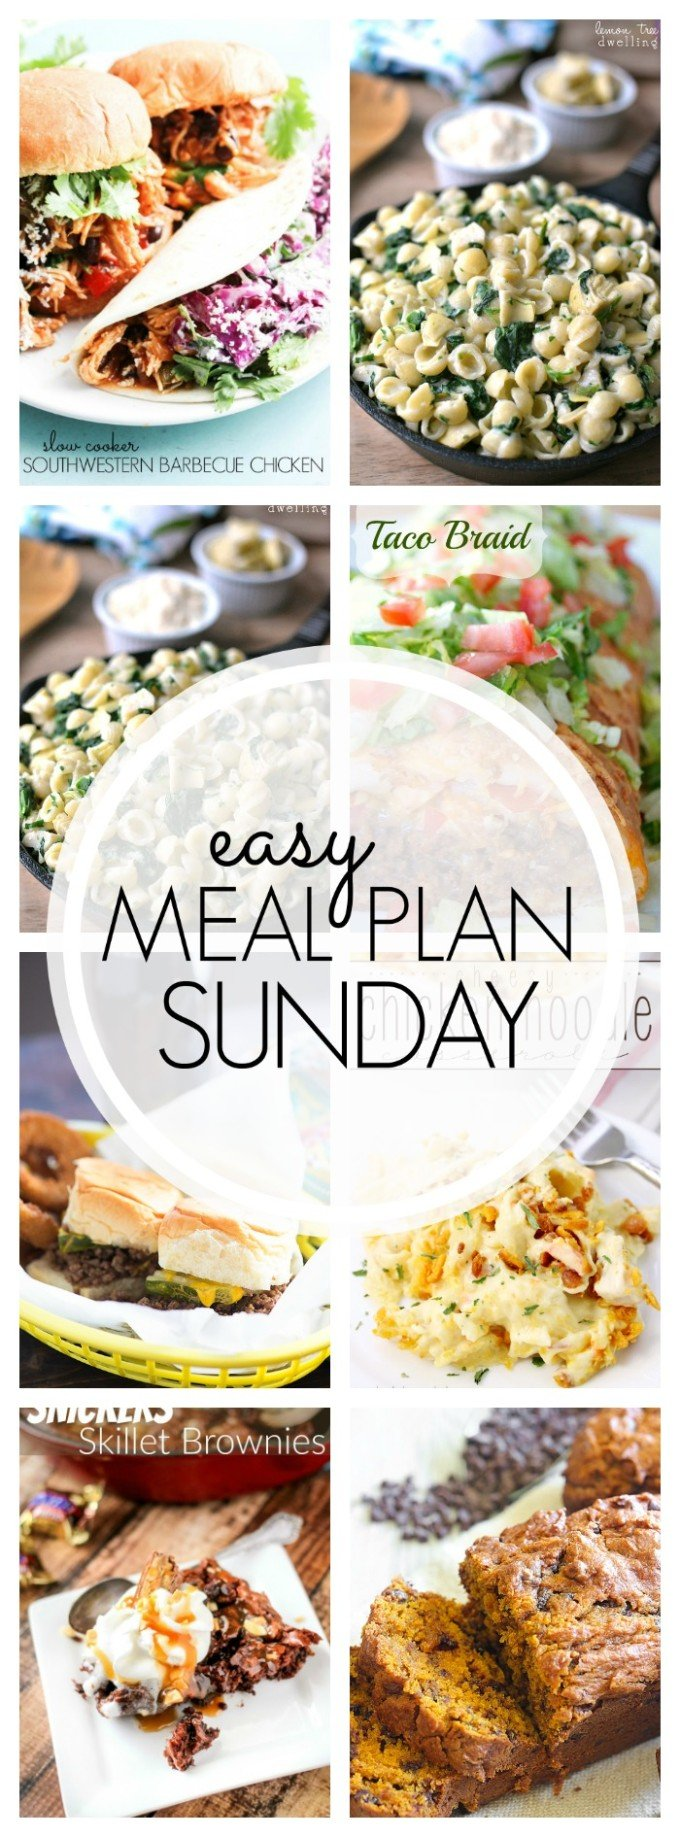 EASY MEAL PLAN – Week 65 - 7 delicious dinners and 2 desserts!